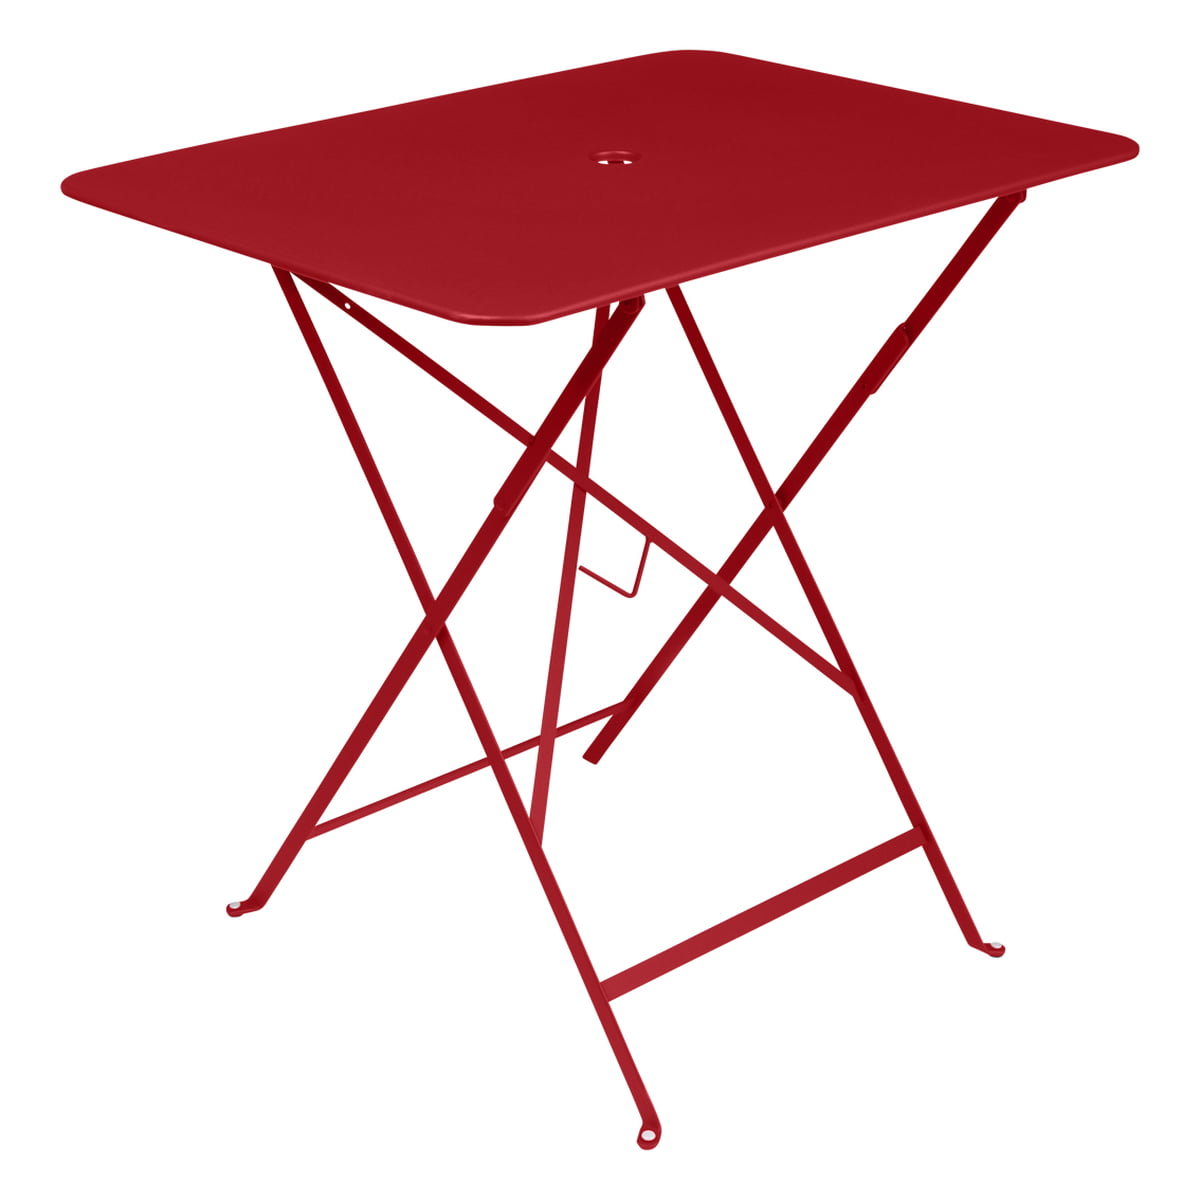 Merveilleux Bistro Folding Table, 77 X 57 Cm, From Fermob In Poppy Red